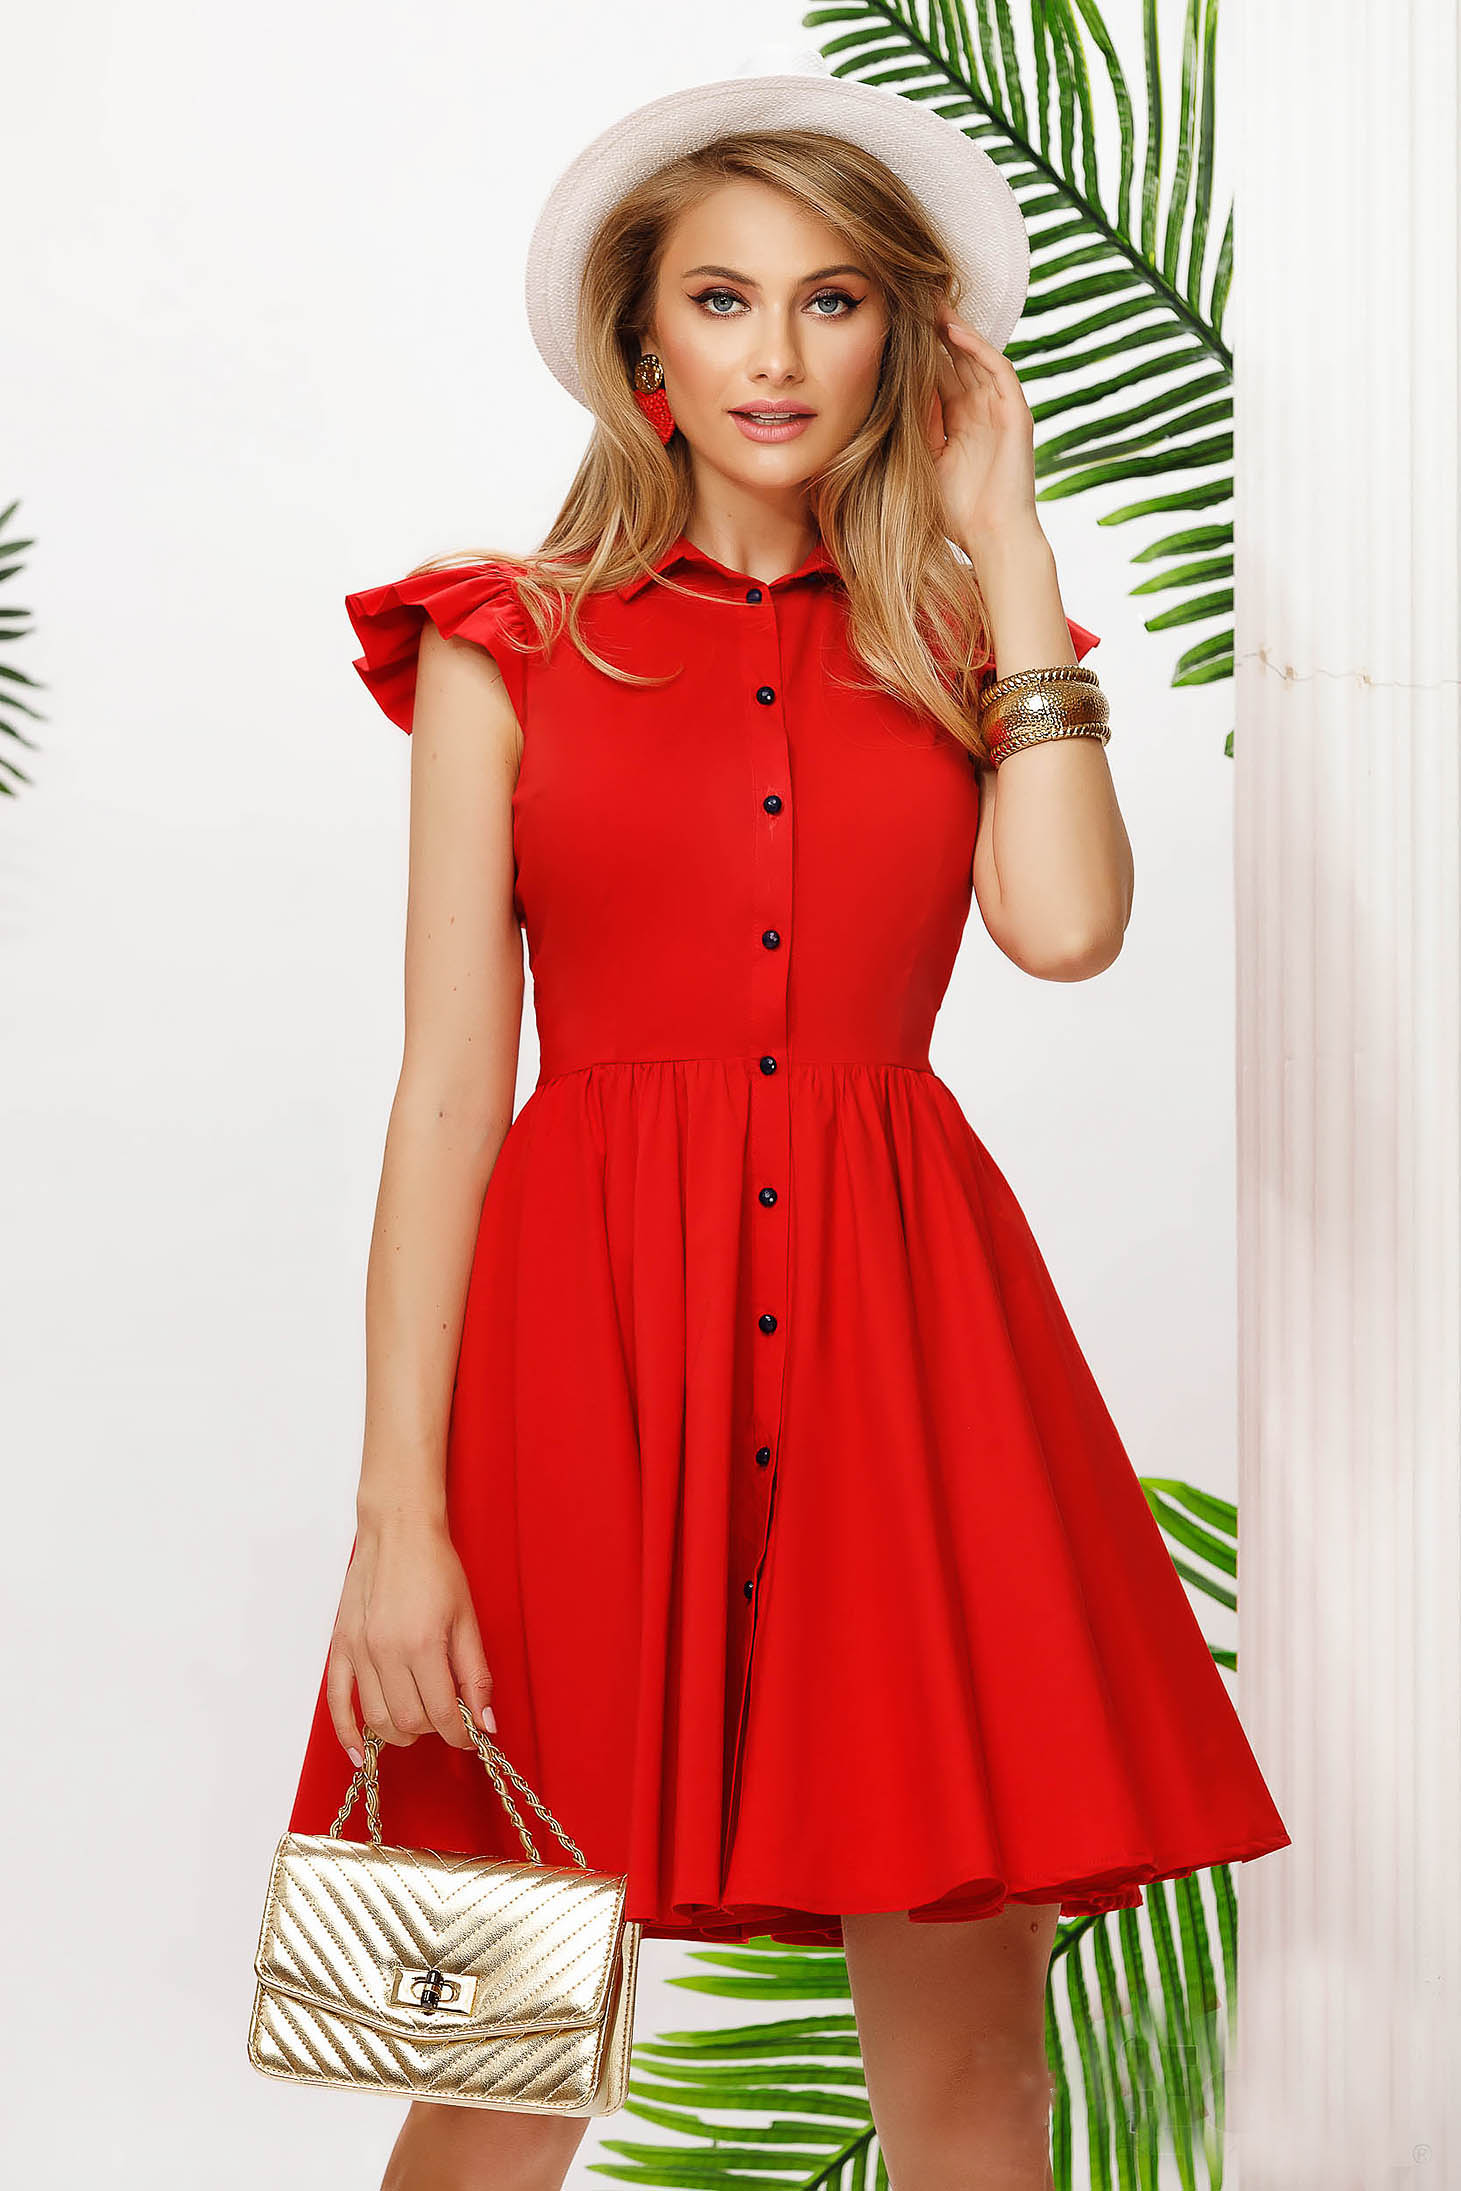 Red dress short cut cloche cotton from elastic fabric with ruffled sleeves